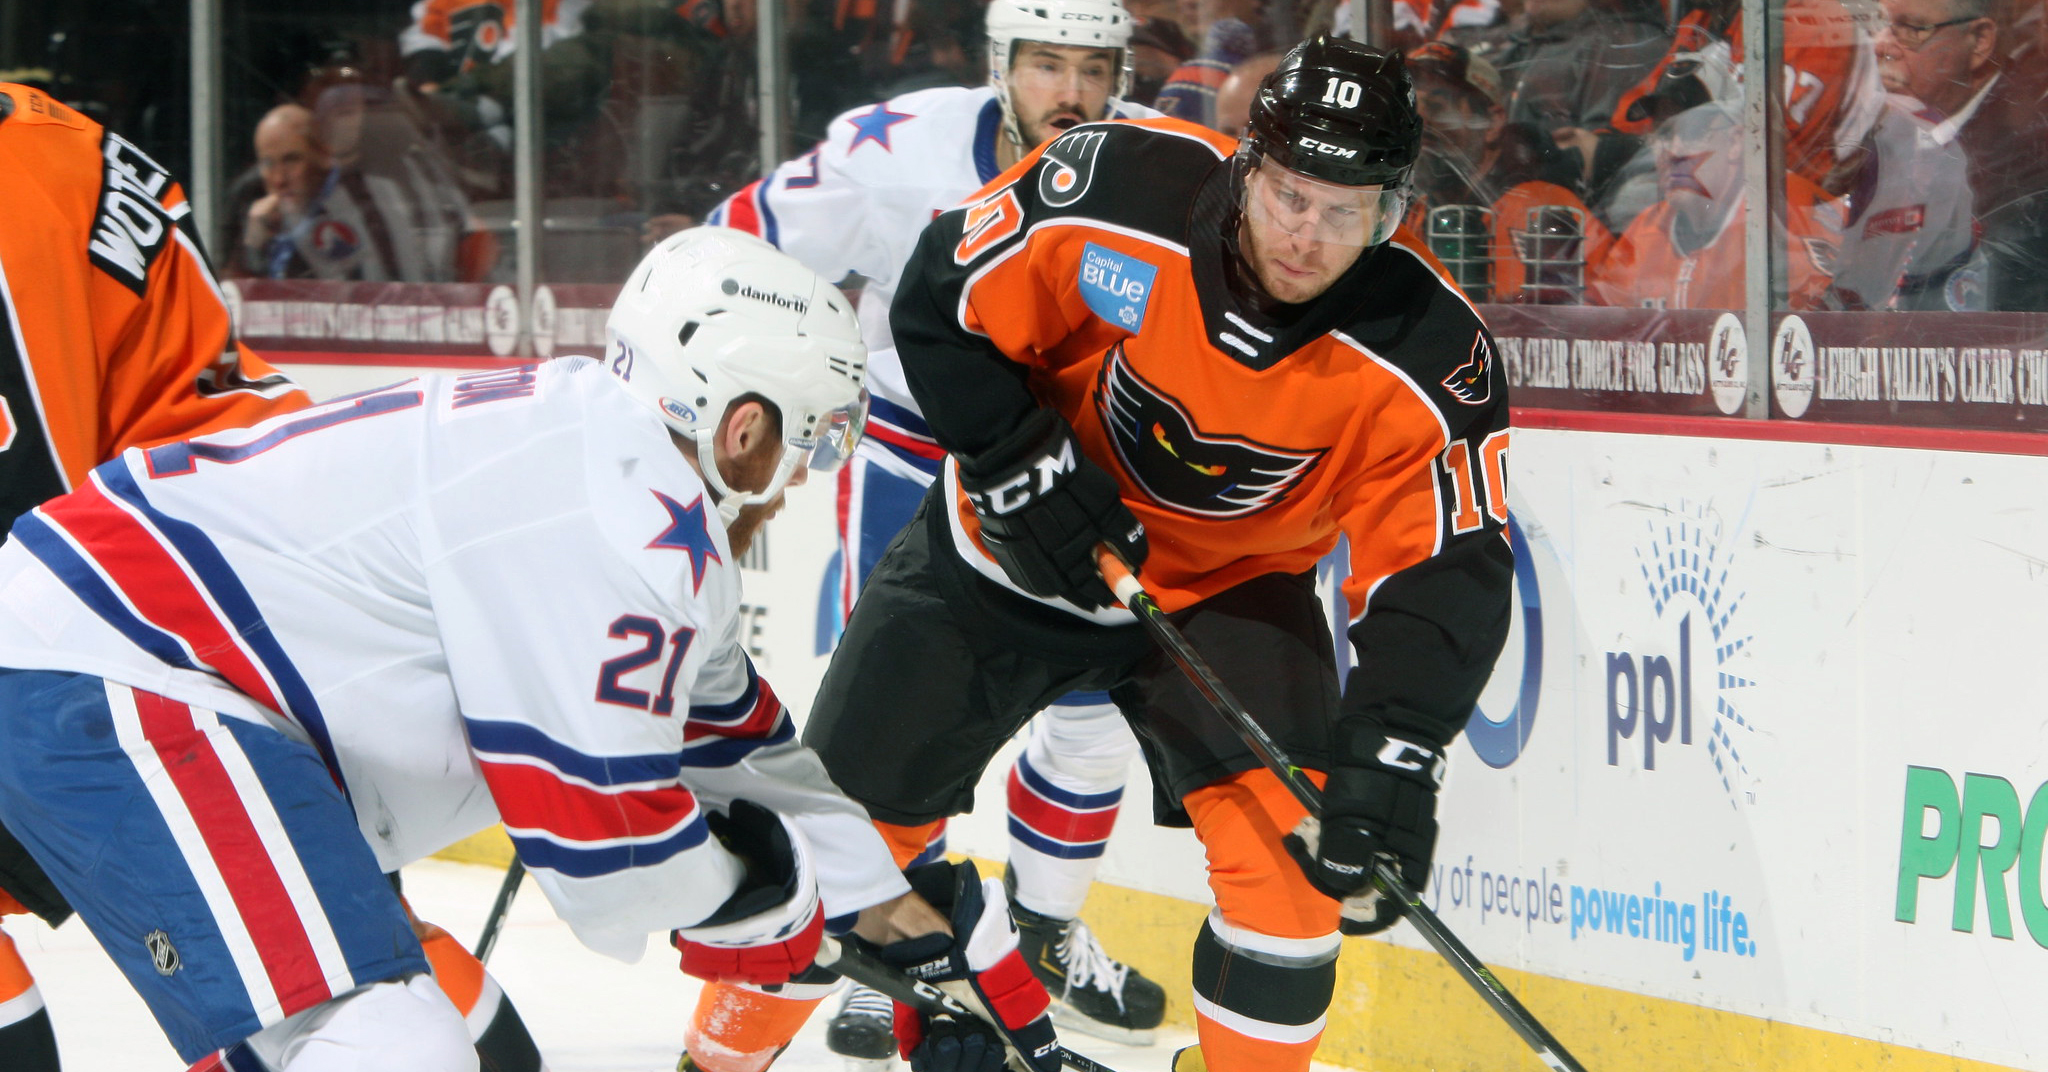 Carey Scores His 100th Goal with Lehigh Valley in 4-0 Win